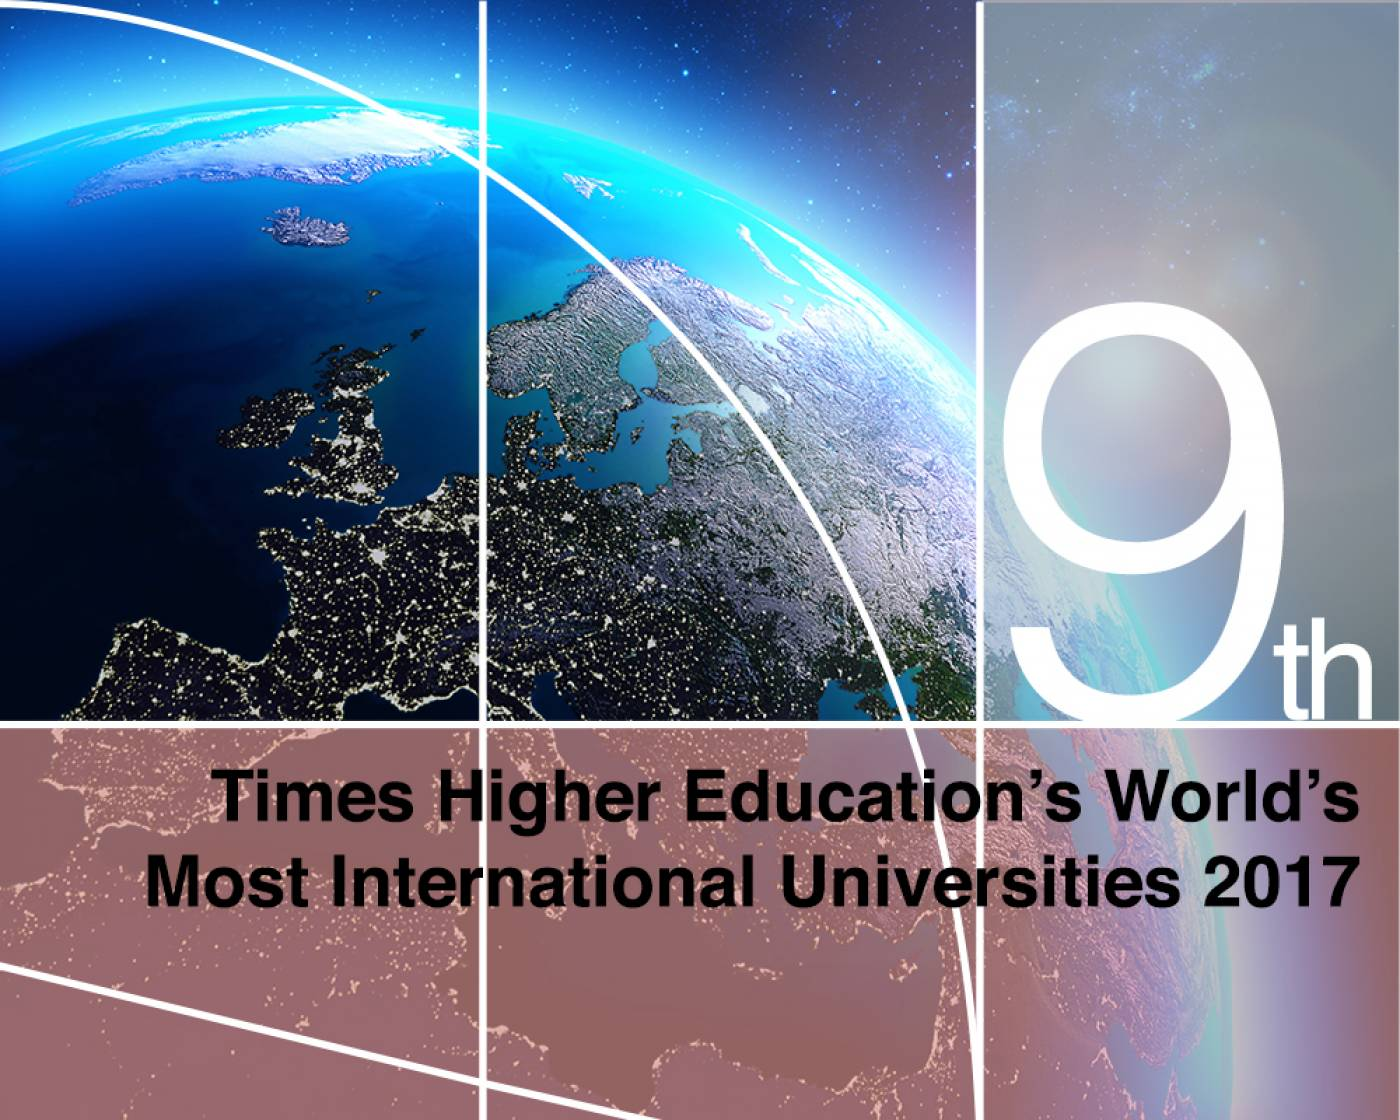 Ranked 9th in the Times Higher Education's World's Most International Universities 2017